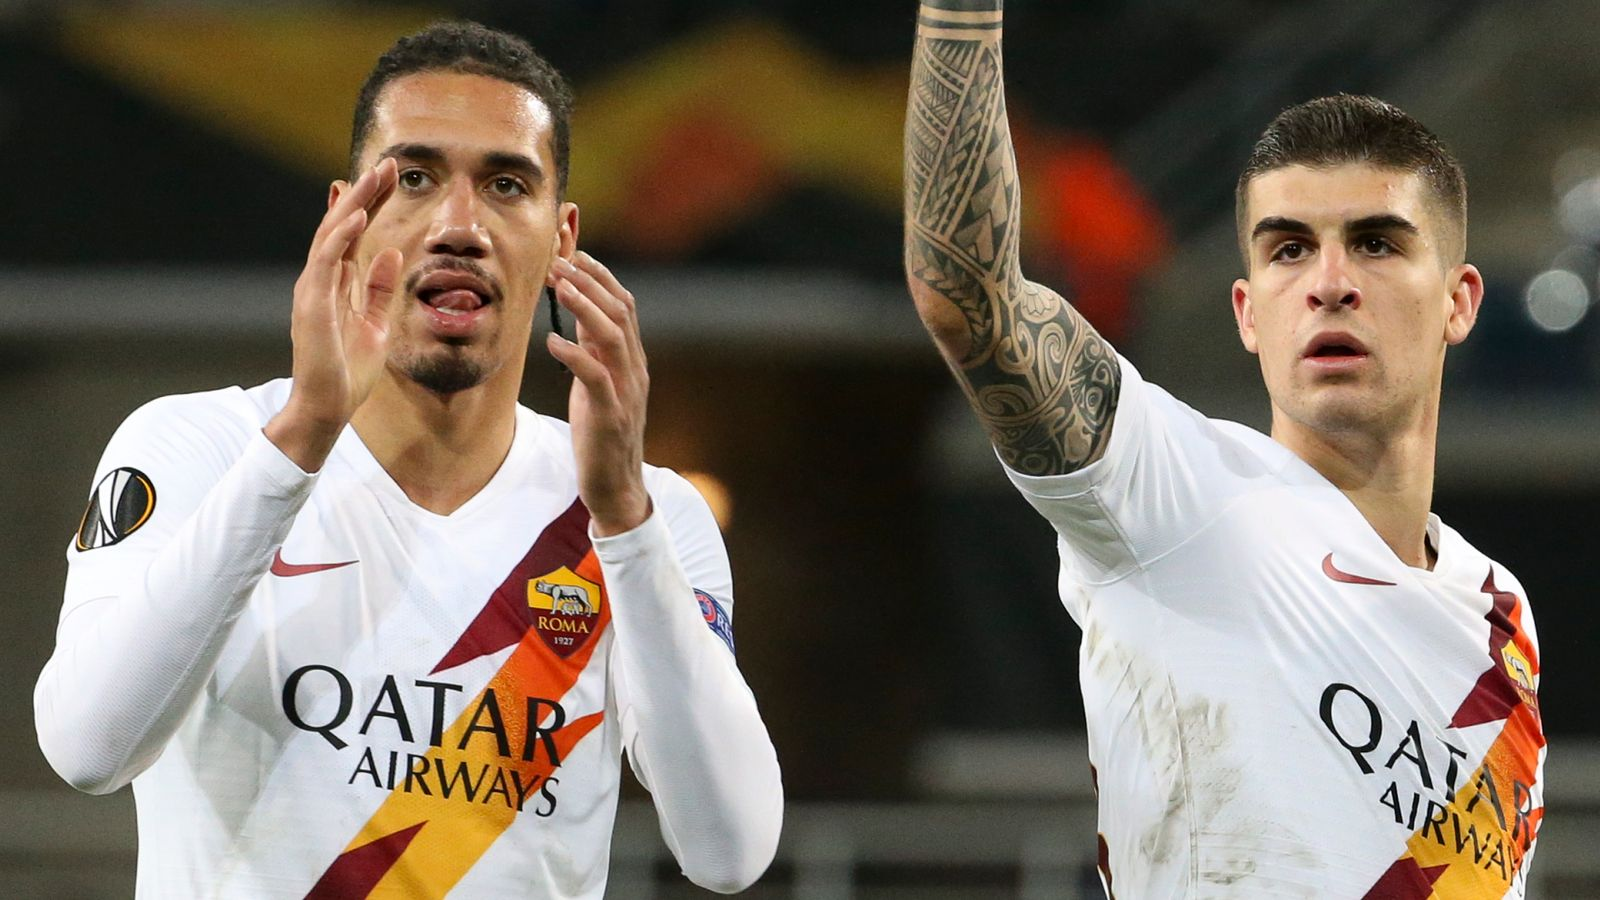 Europa League: Chris Smalling's Roma reach last 16